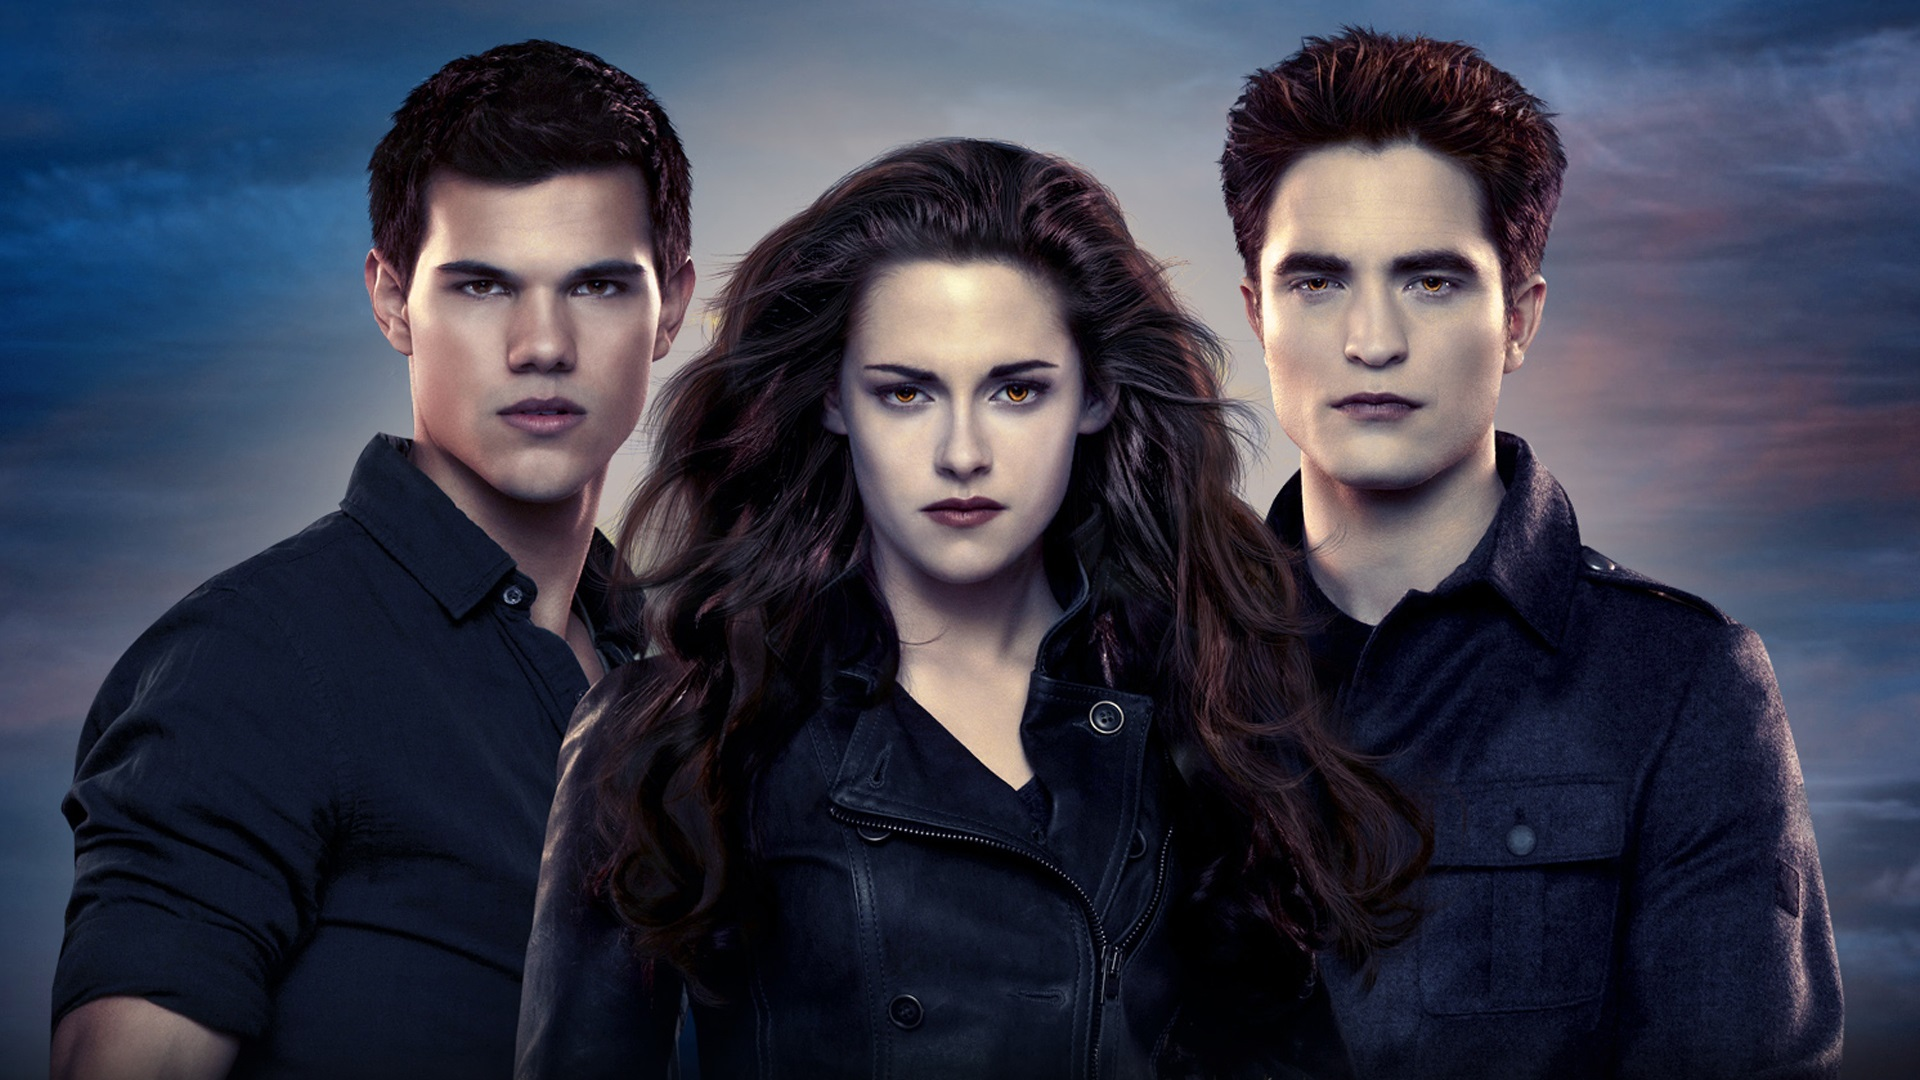 Watch The Twilight Saga New Moon 123Movies Full Movie